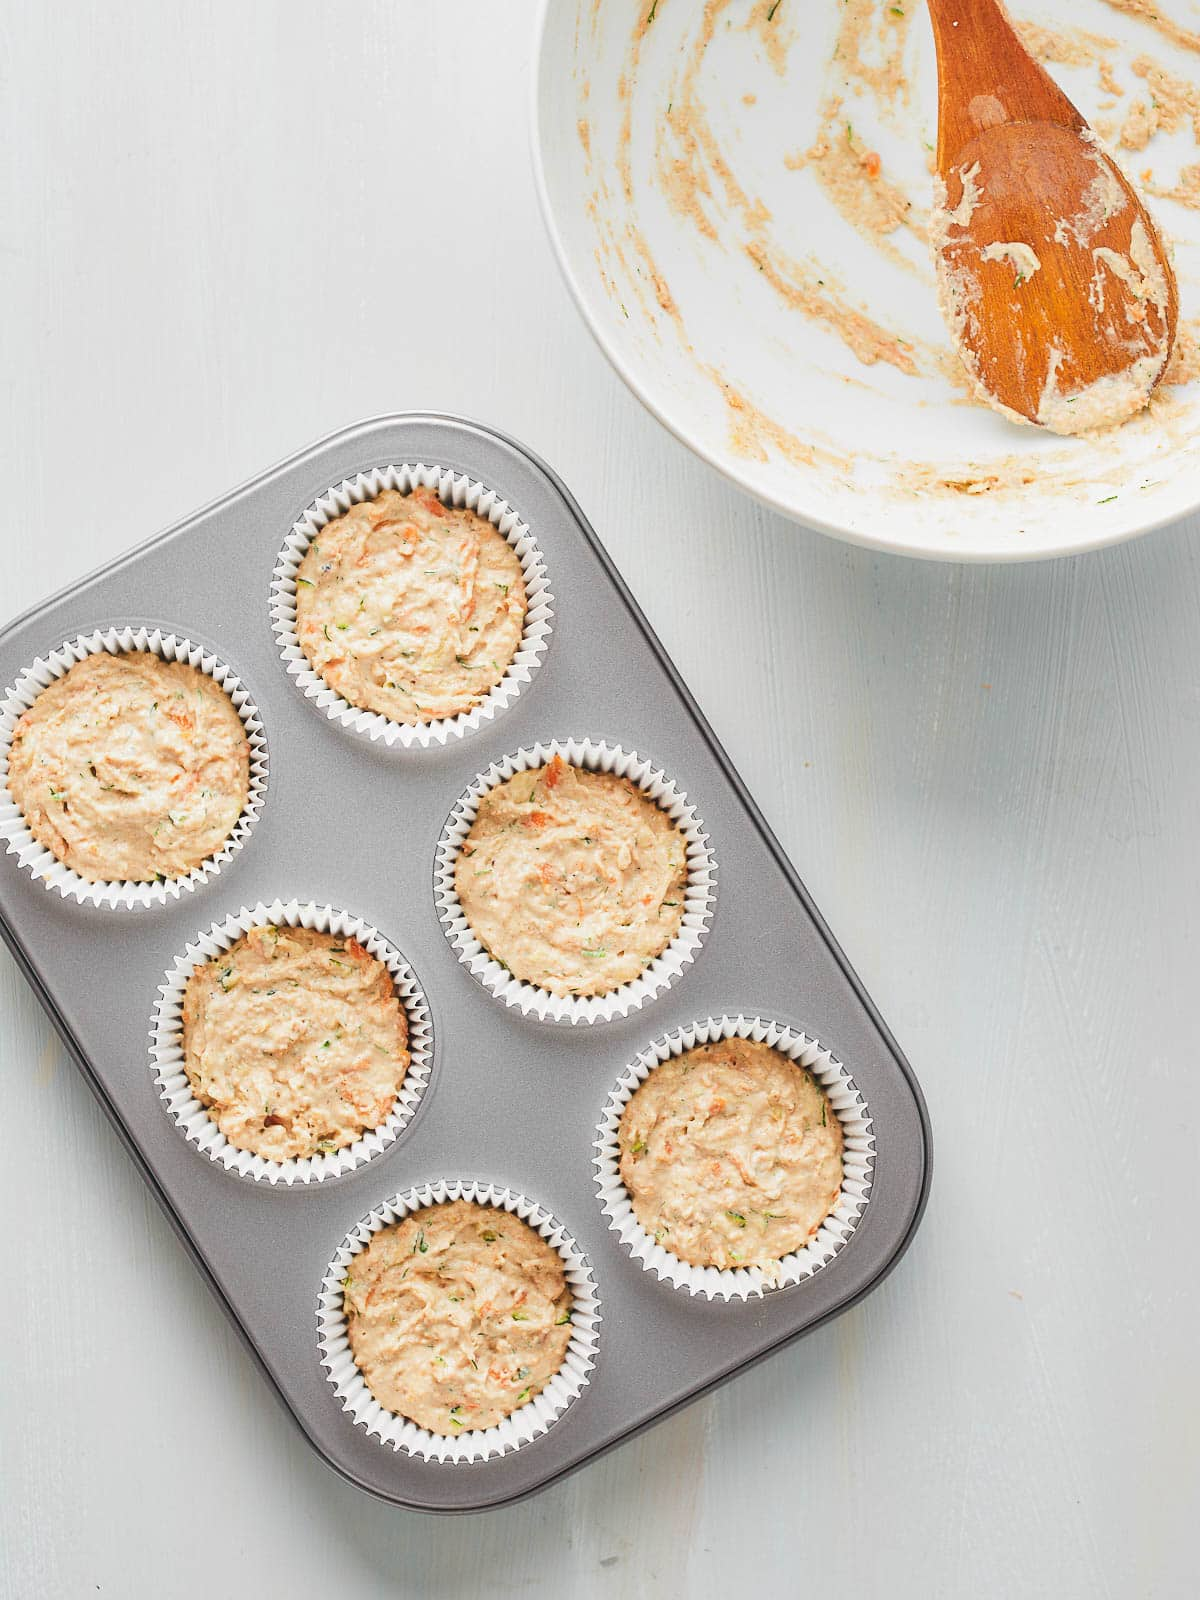 Photo of the filled muffin cases